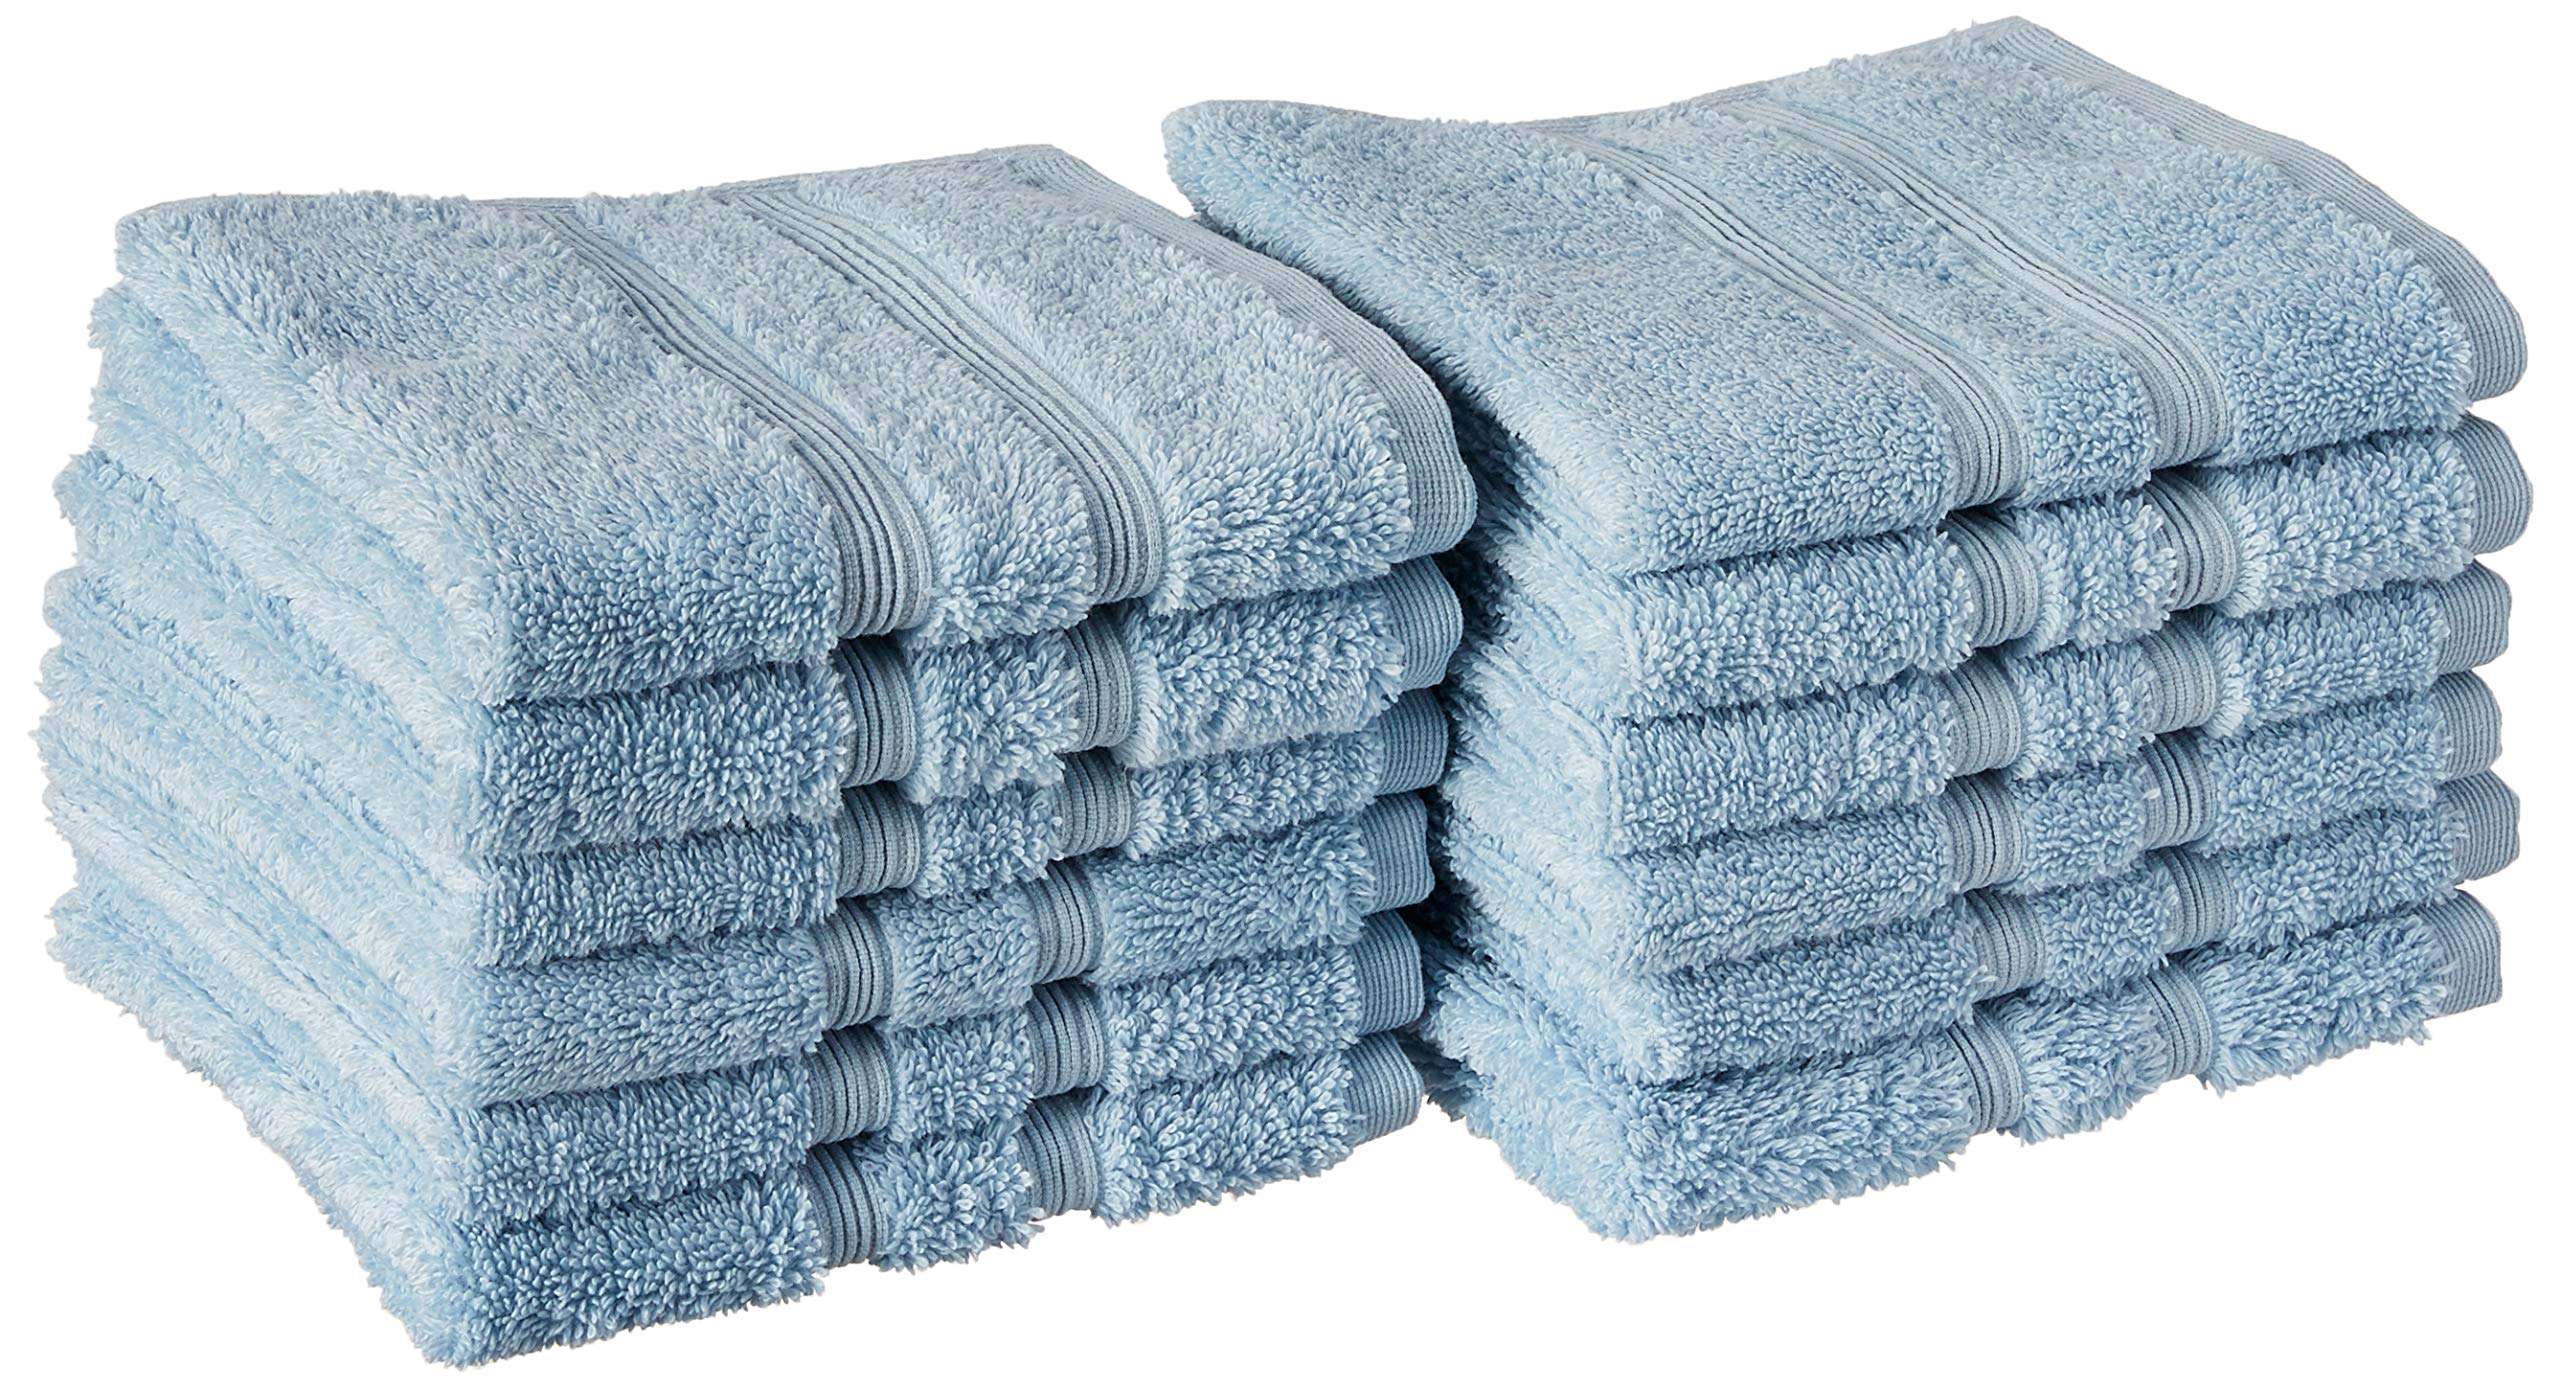 Manor Ridge Turkish Cotton 700 GSM Wash Cloth Set, Super Soft, Heavy Weight & Absorbent, 12-Pack, Blue 12 Count